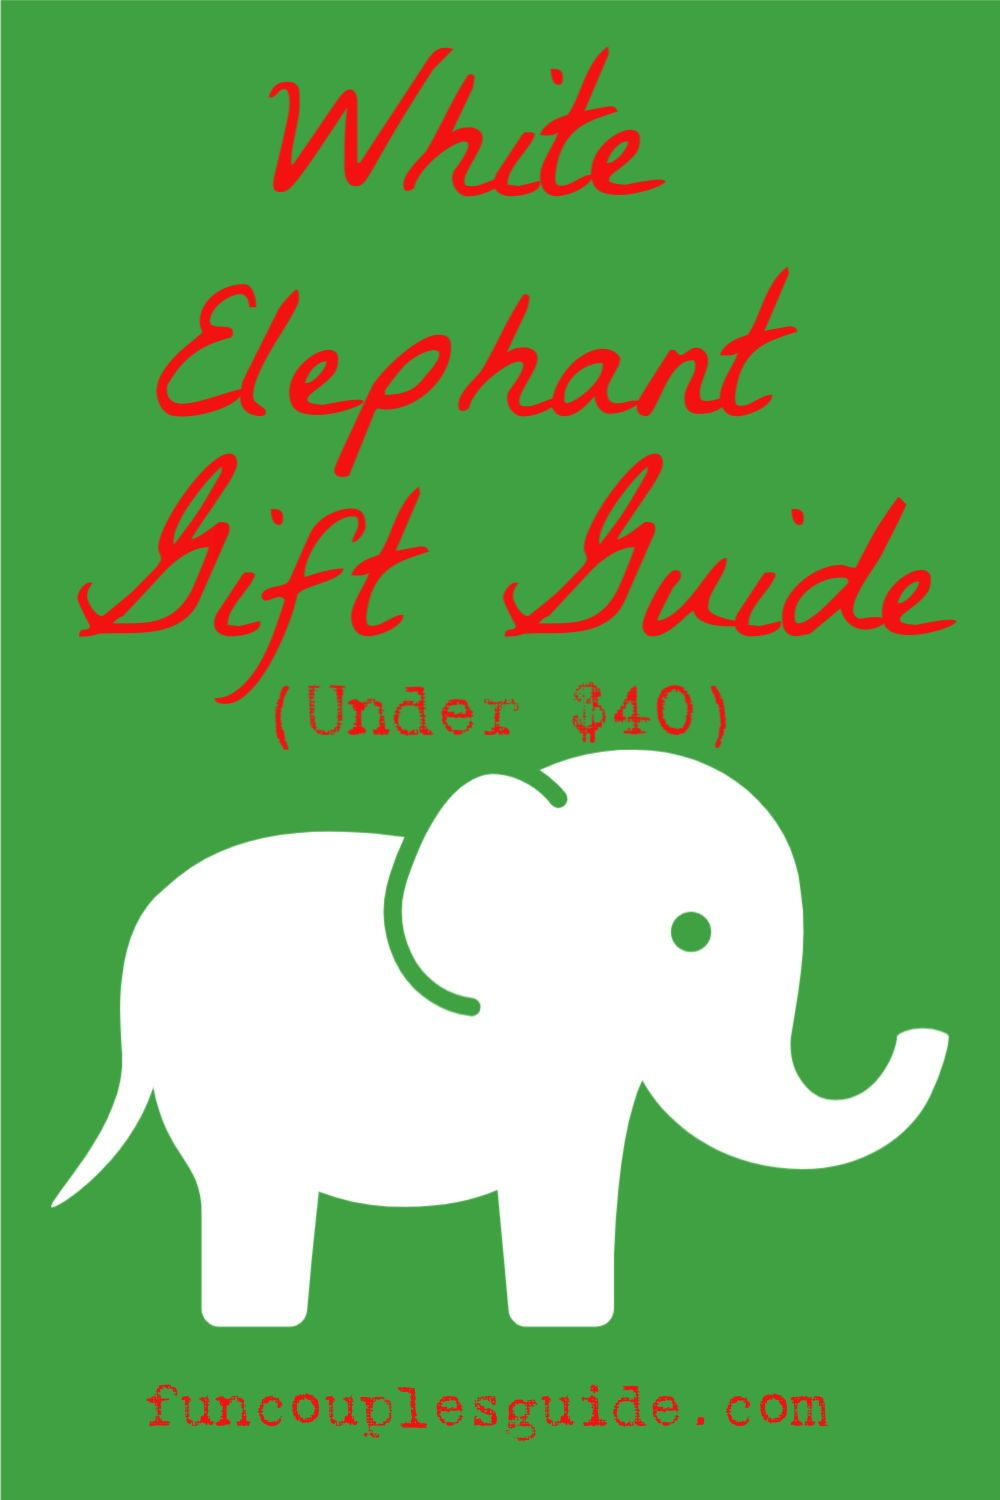 Home fun couples guide white elephant gifts elephant